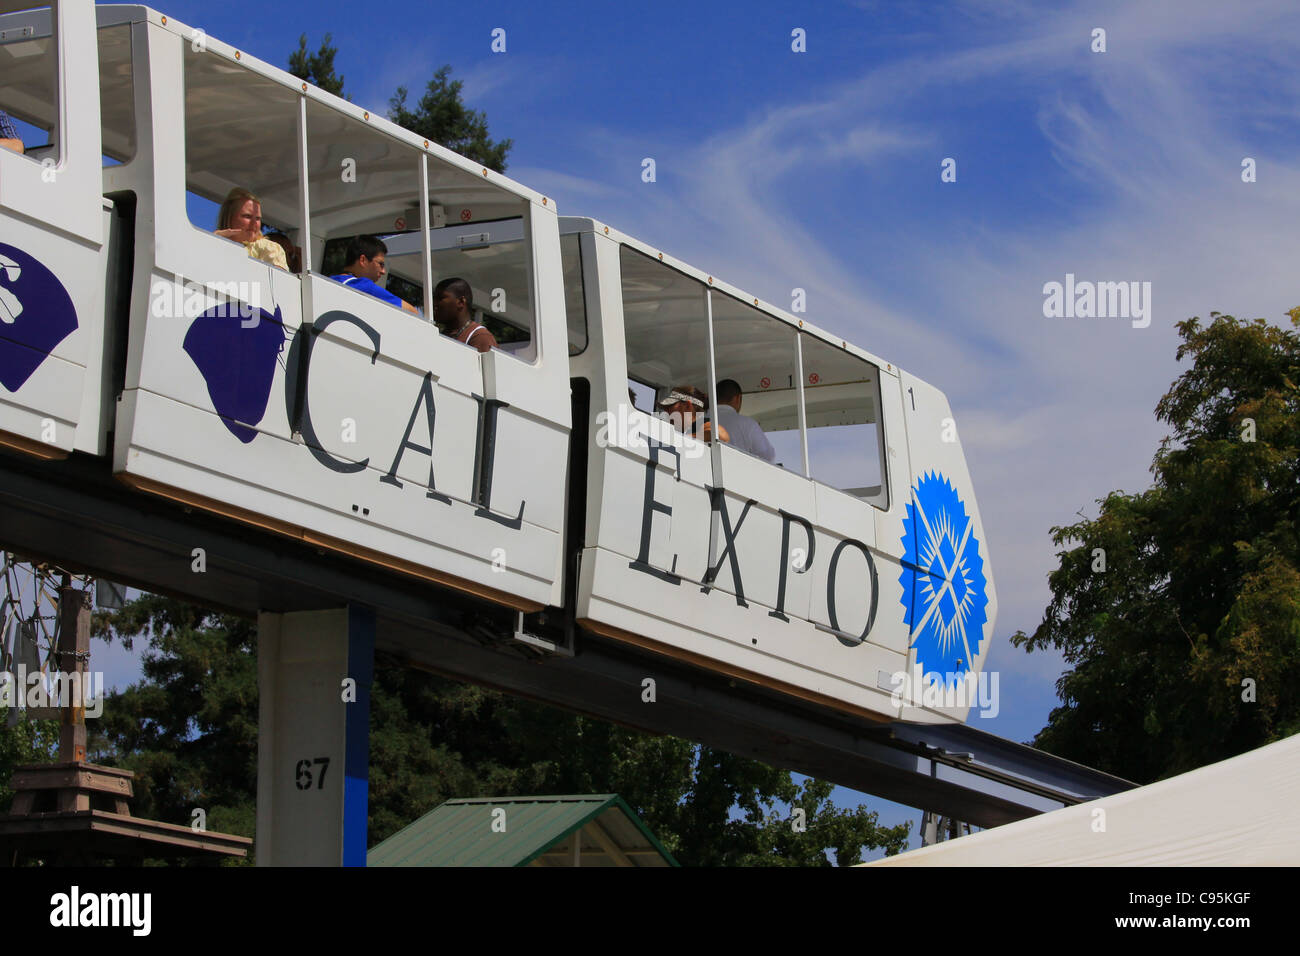 cal expo monorail at state fairgrounds in sacramento california - Stock Image